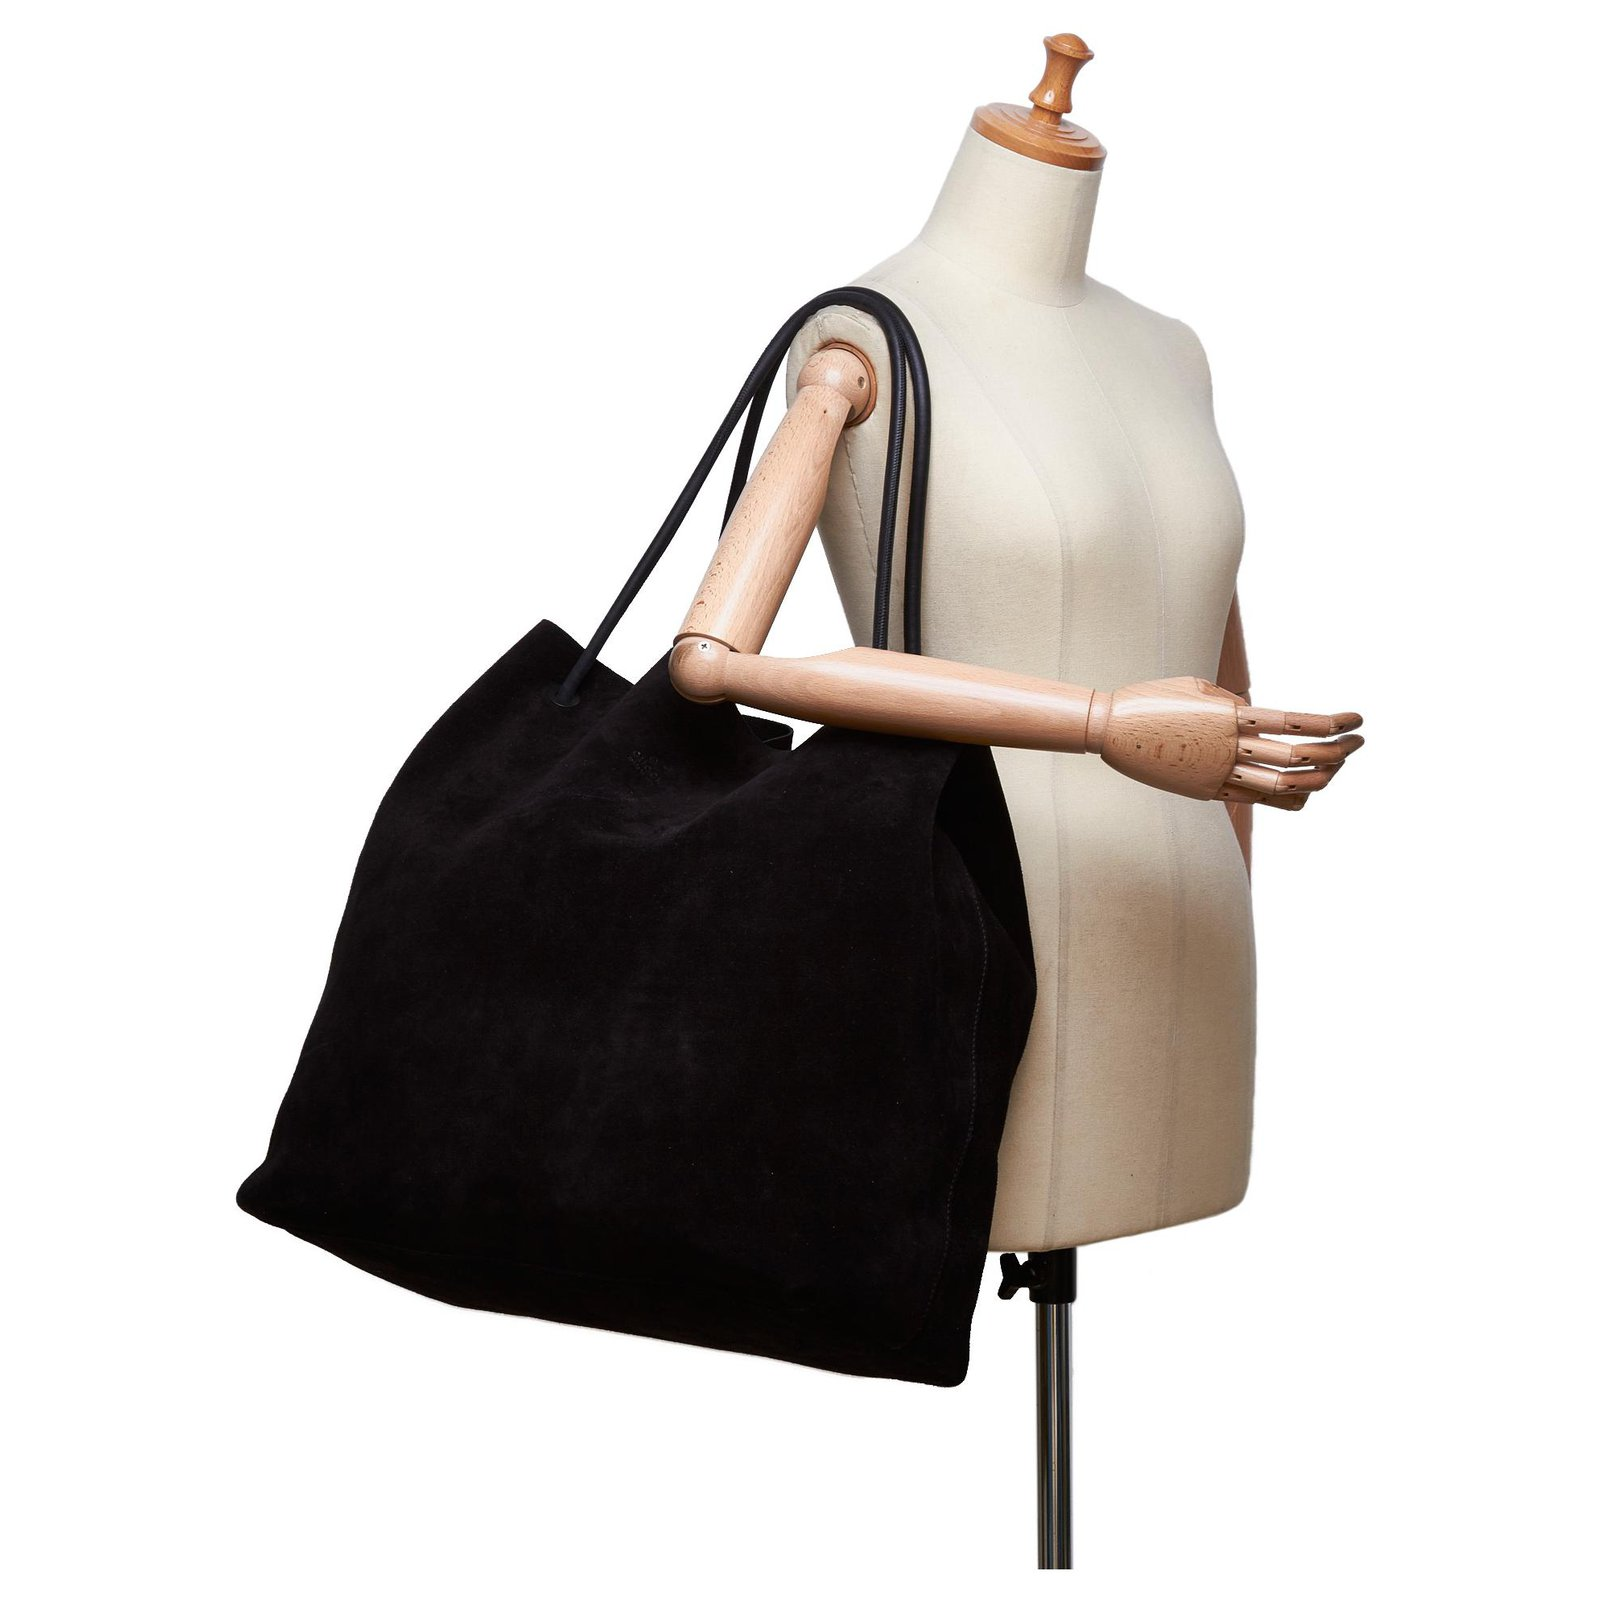 8c7b13d88 Gucci Gucci Black Suede Tote Bag Totes Suede,Leather,Other Black ref.124219  - Joli Closet